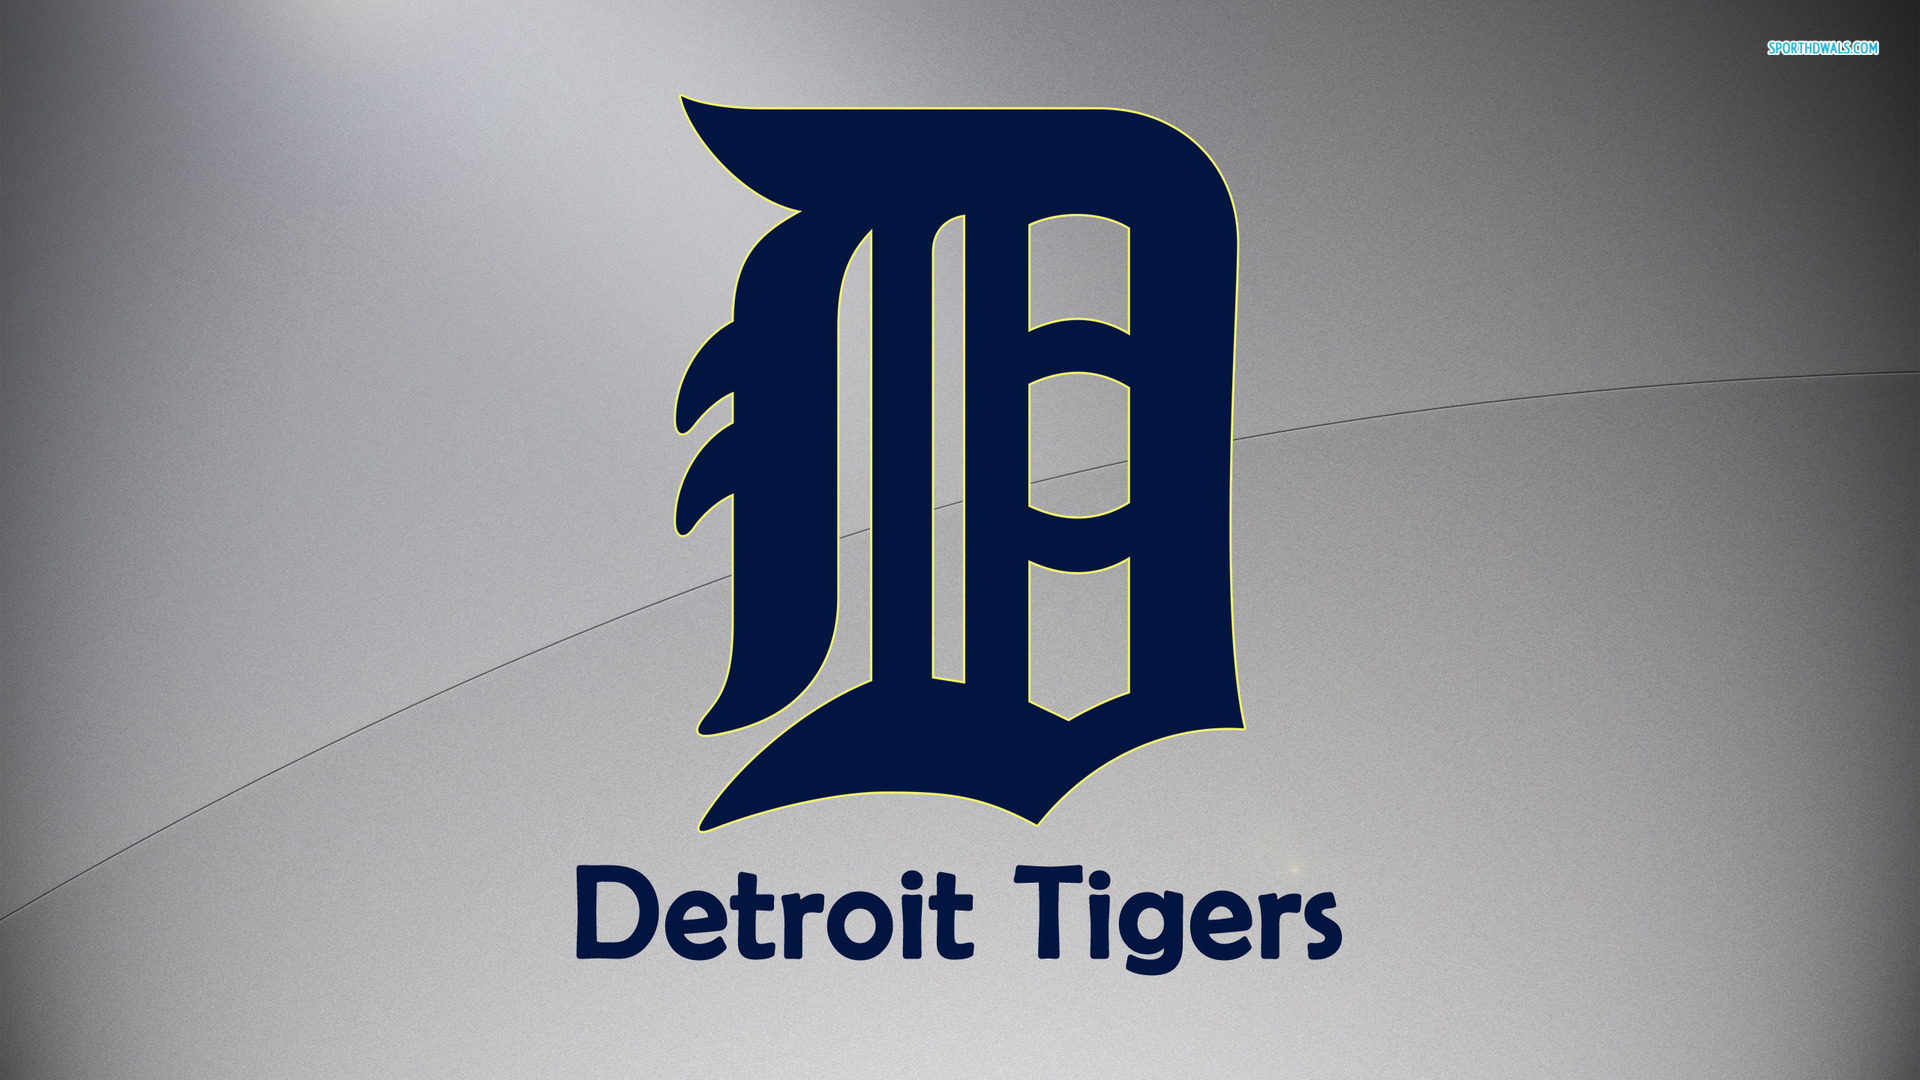 Detroit-Tigers-wallpaper-wp3604806